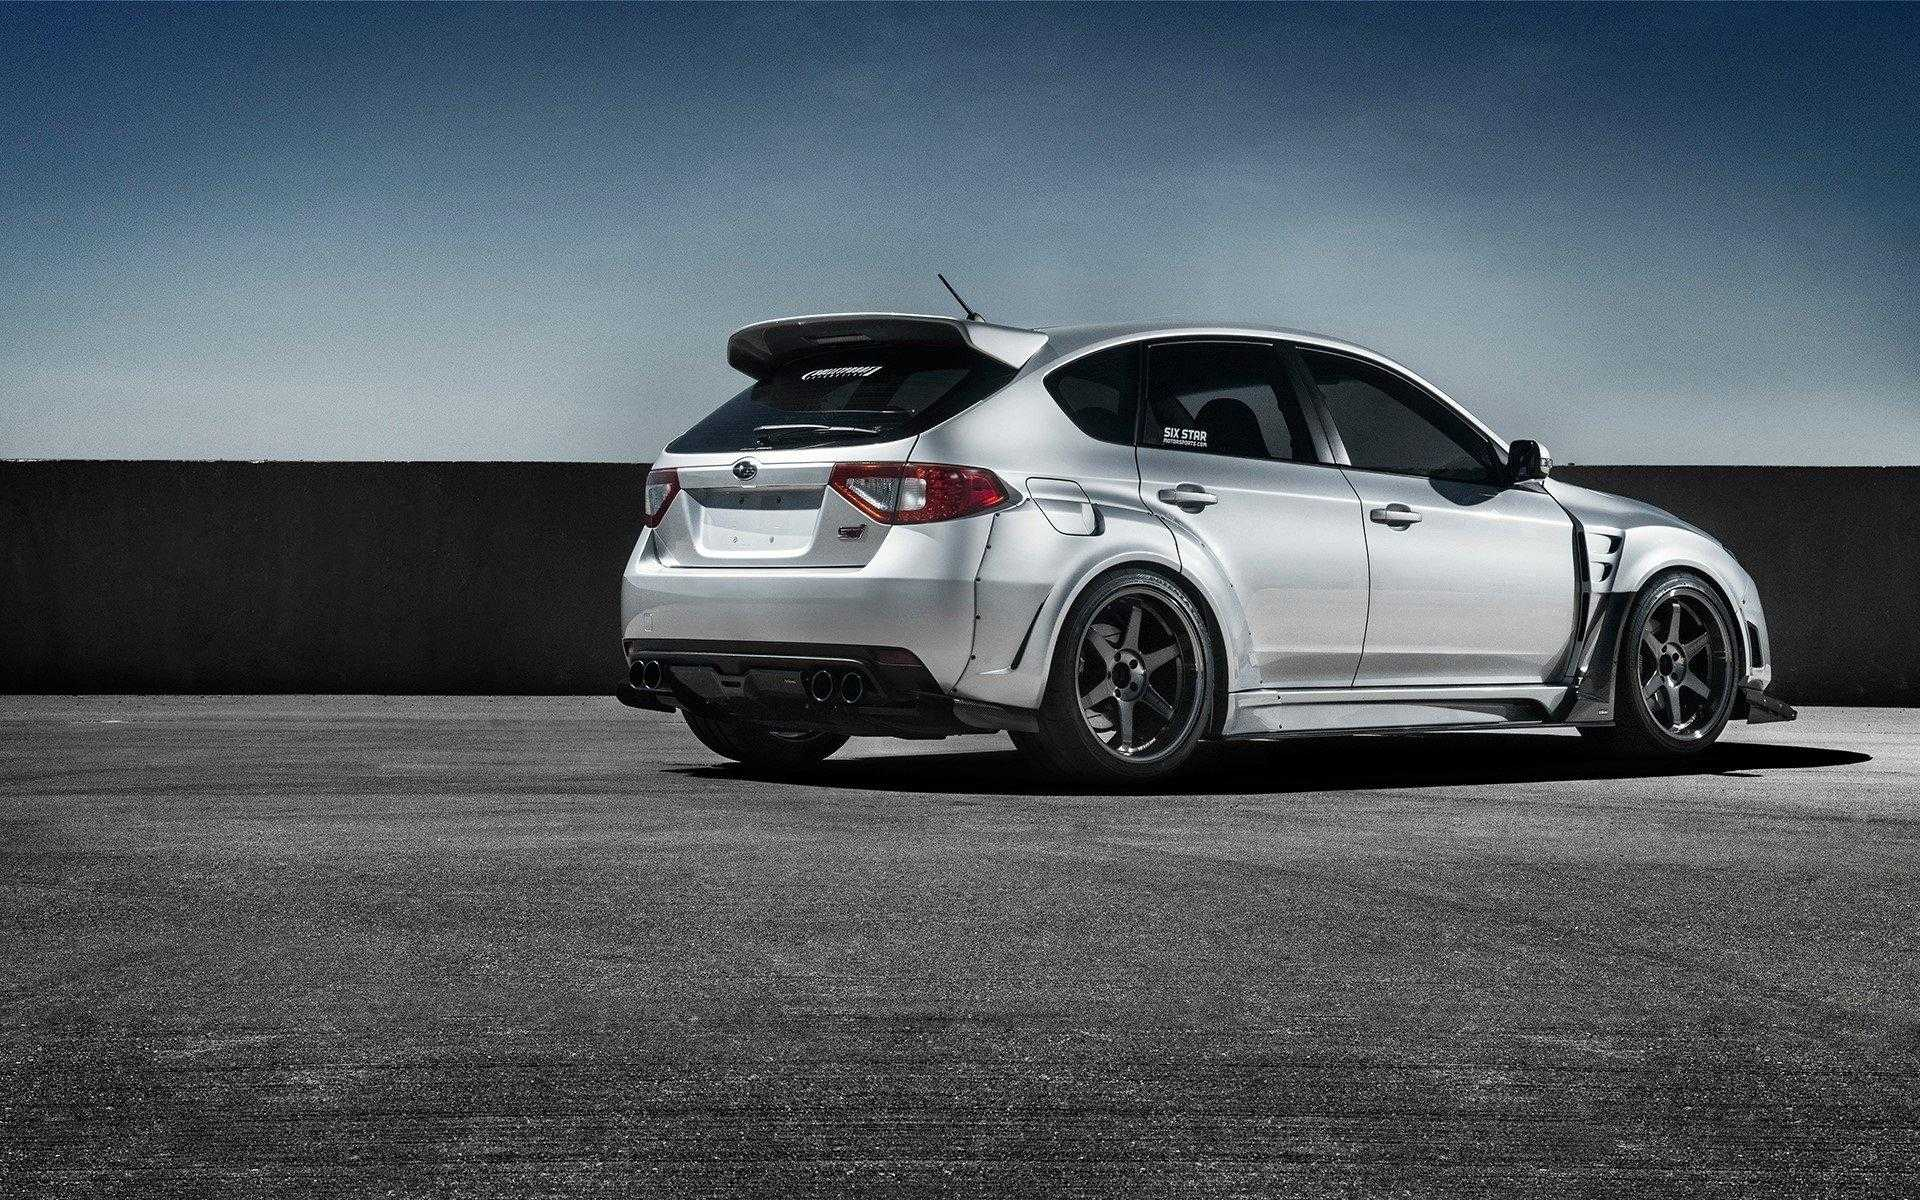 Wallpaper Blink - Subaru WRX Wallpaper HD 9 - 1920 X 1200 for ...